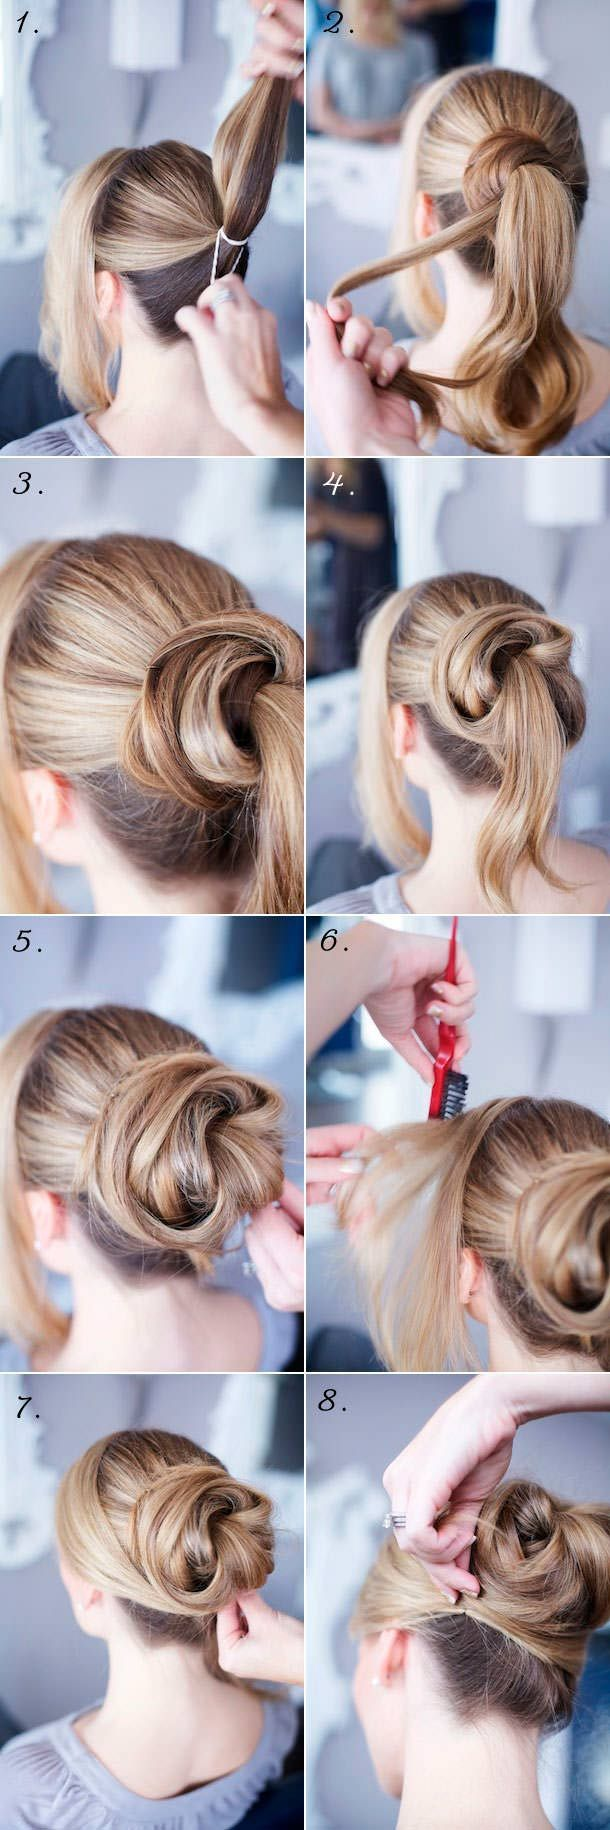 Gorgeous updo tutorial #hairstyles #style